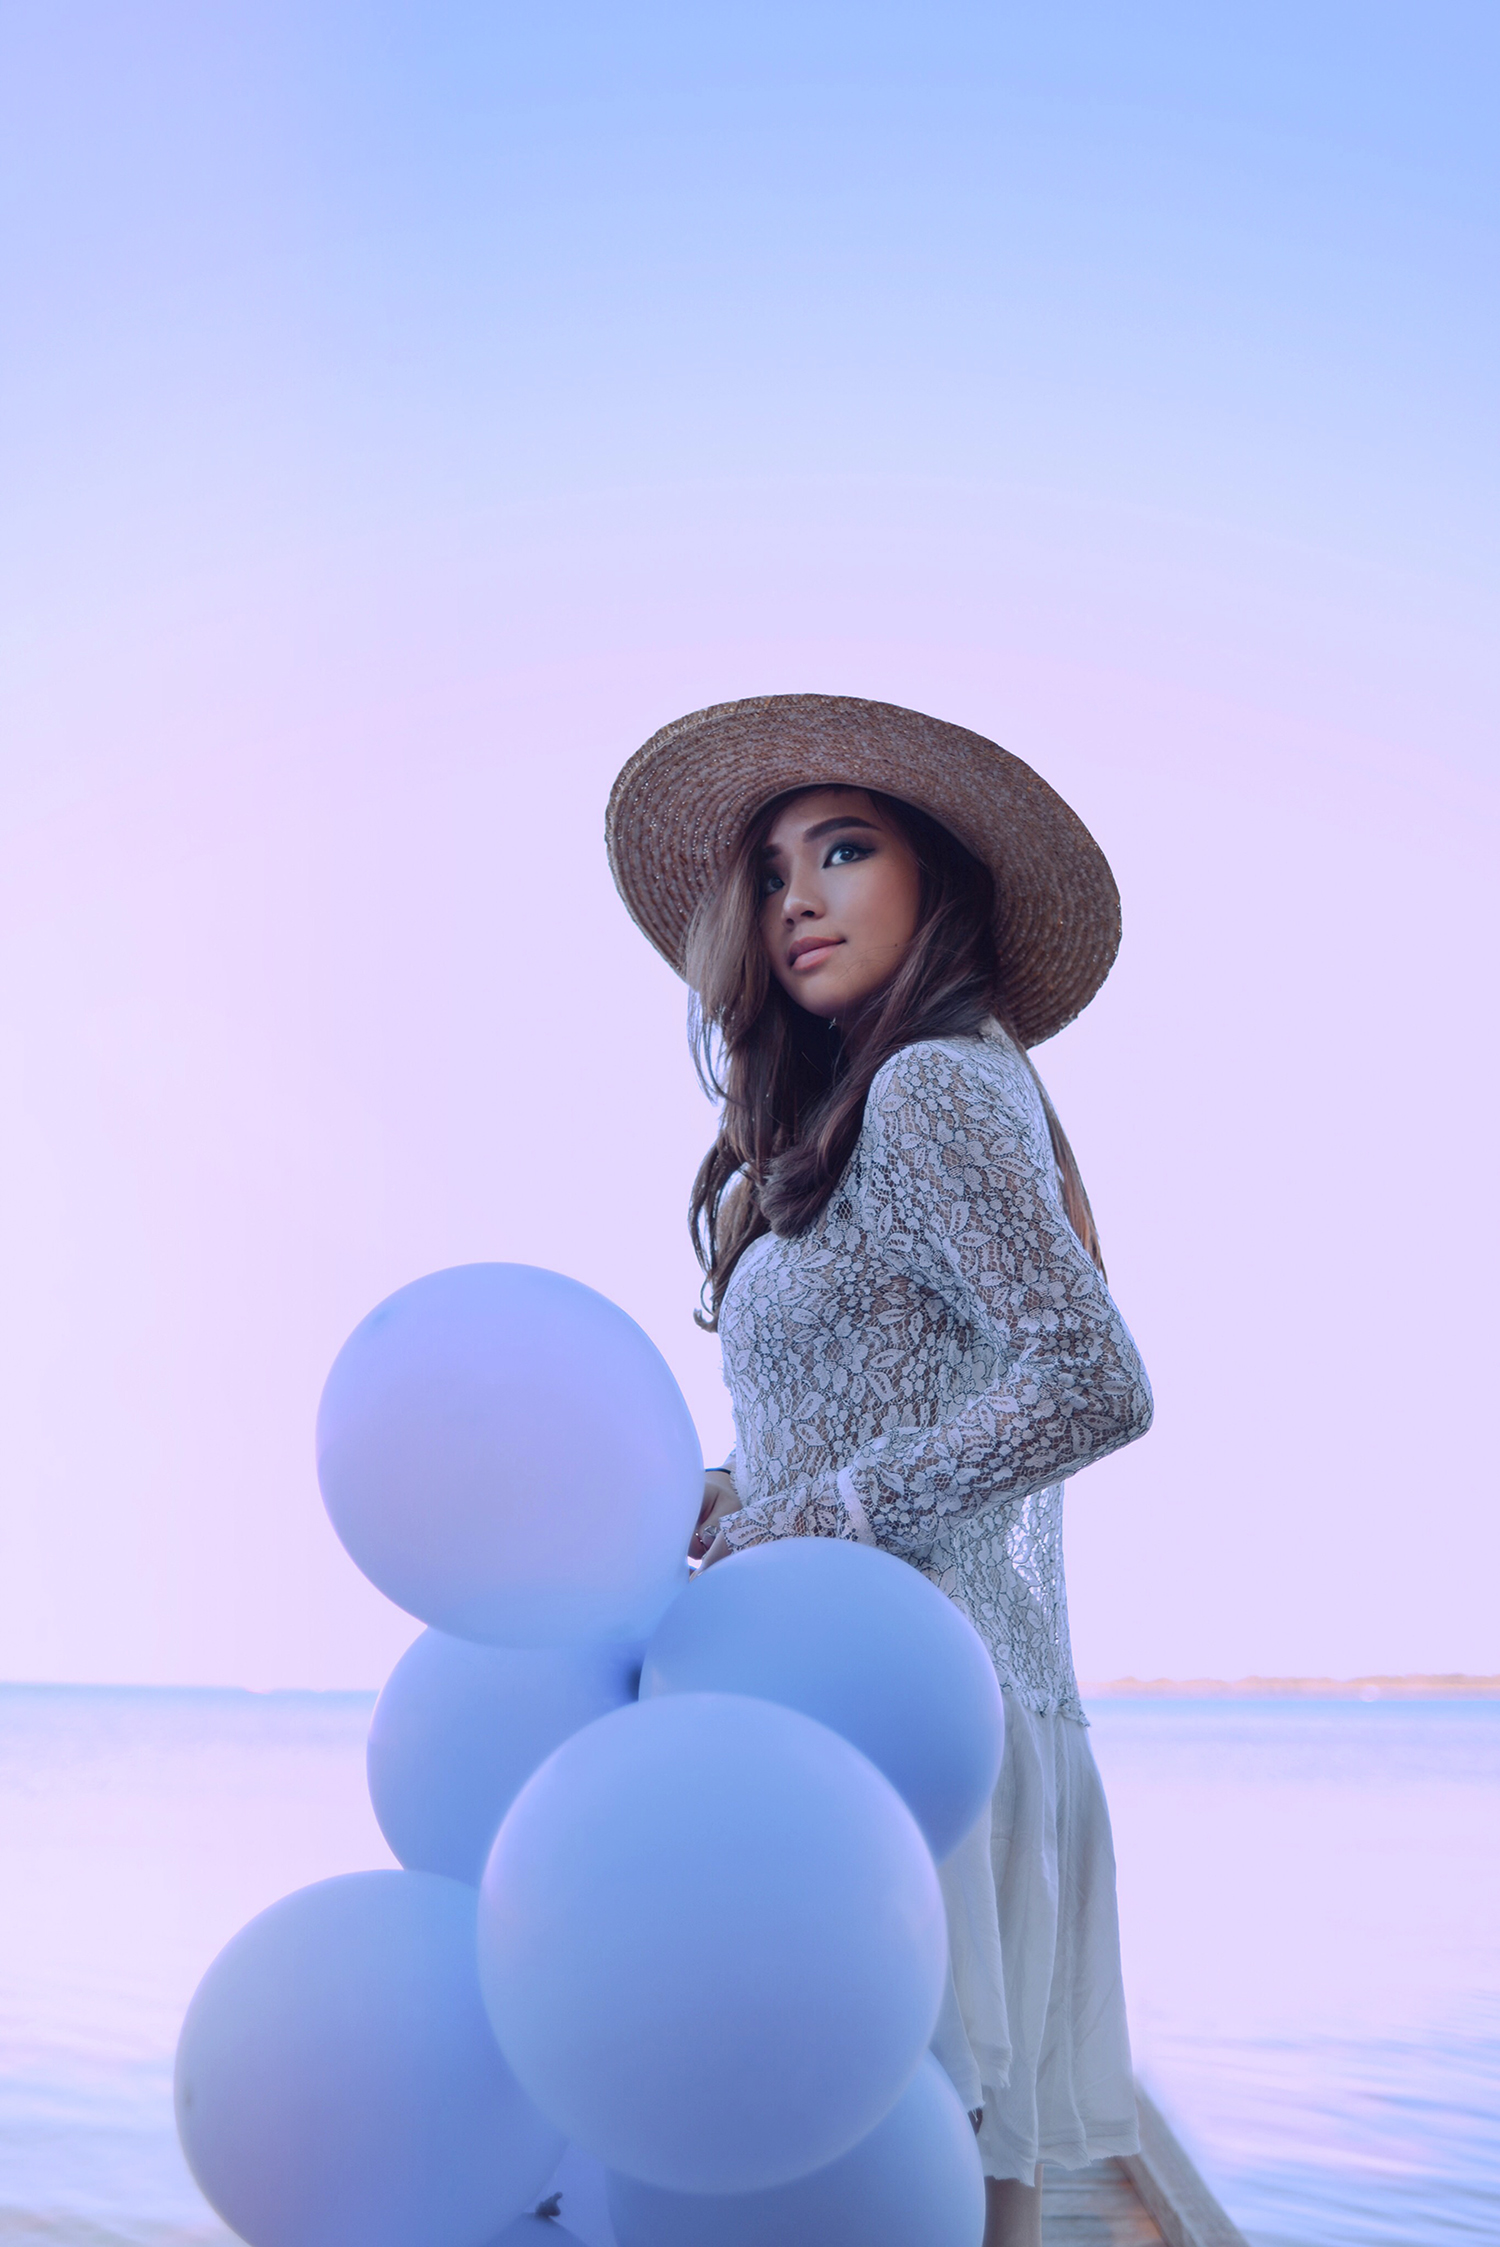 willabelle-ong-paledivision-street-style-fashion-travel-lifestyle-blog-australia-singapore-blogger-perth-lake-pastel-revolve-free-people-new-tell-tale-lace-tunic-balloons-1